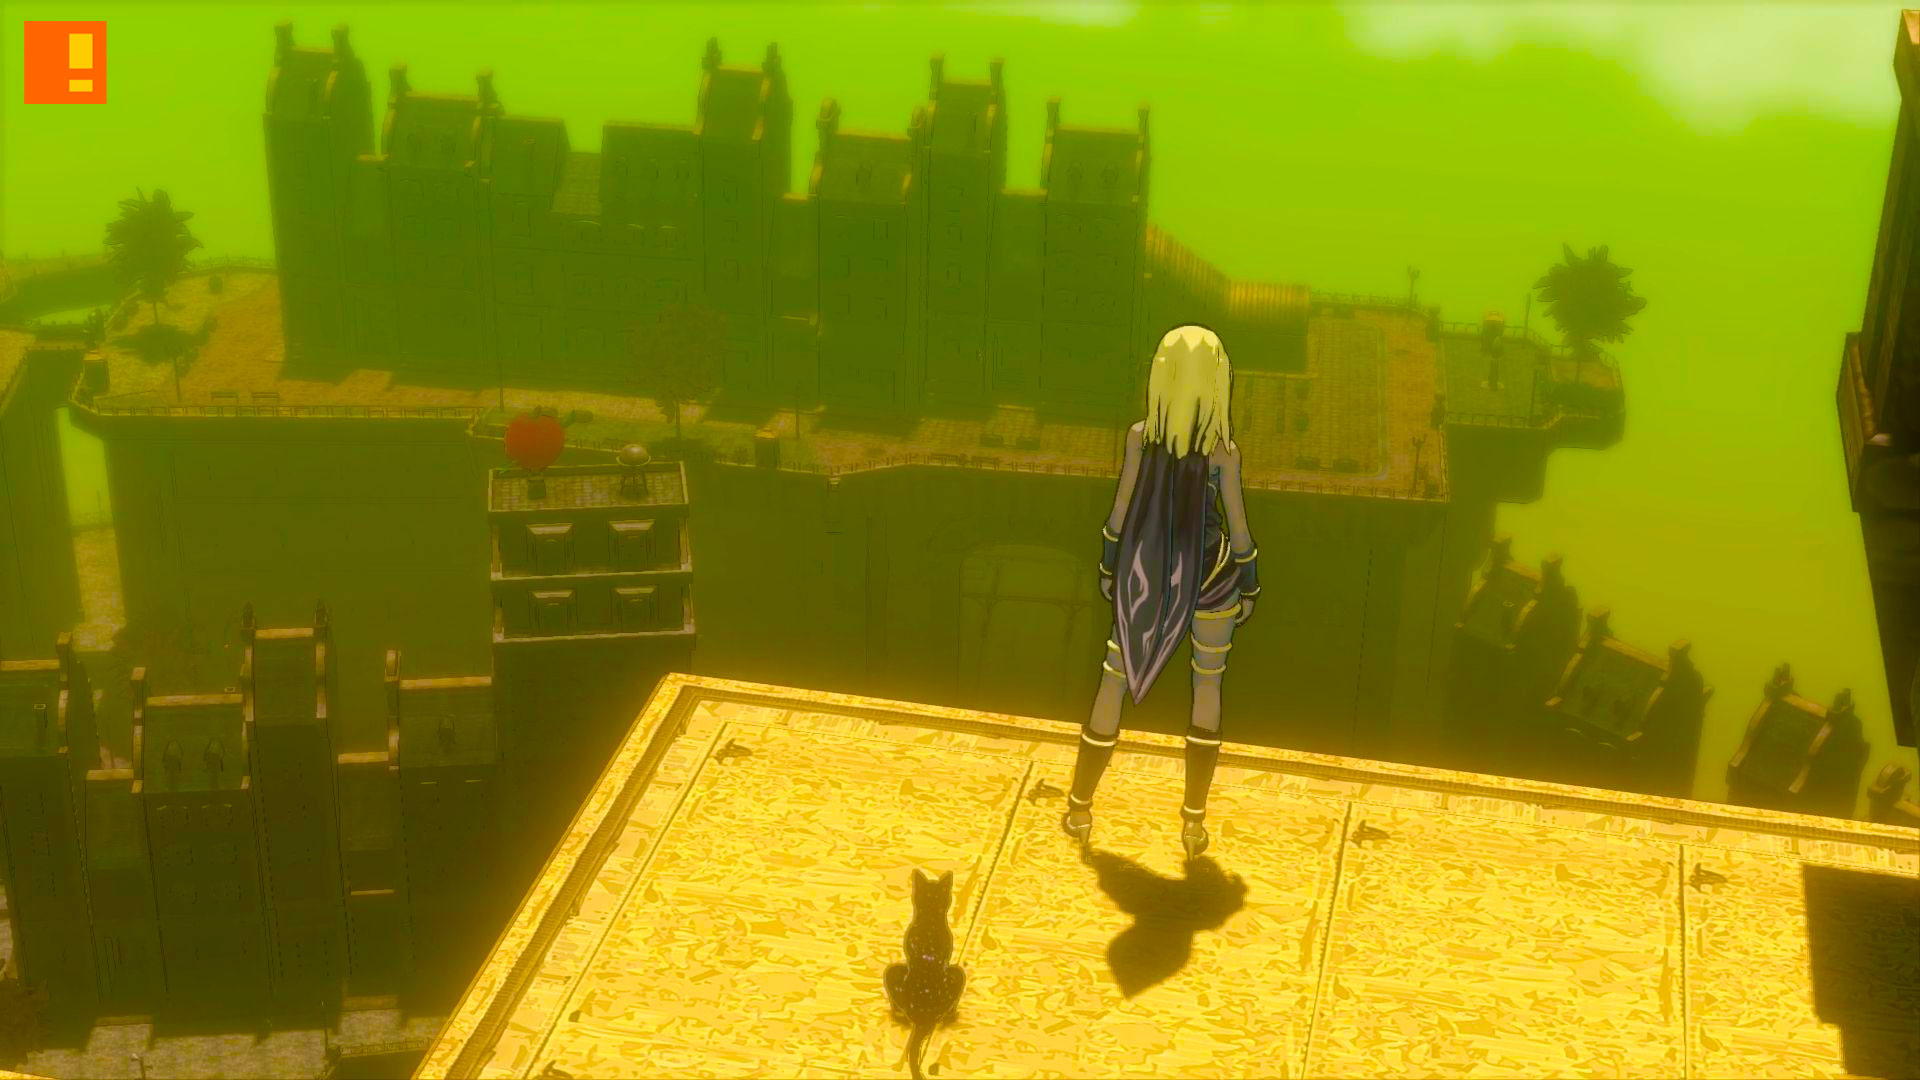 gravity Rush remastered. japan studio. the action pixel. @theactionpixel